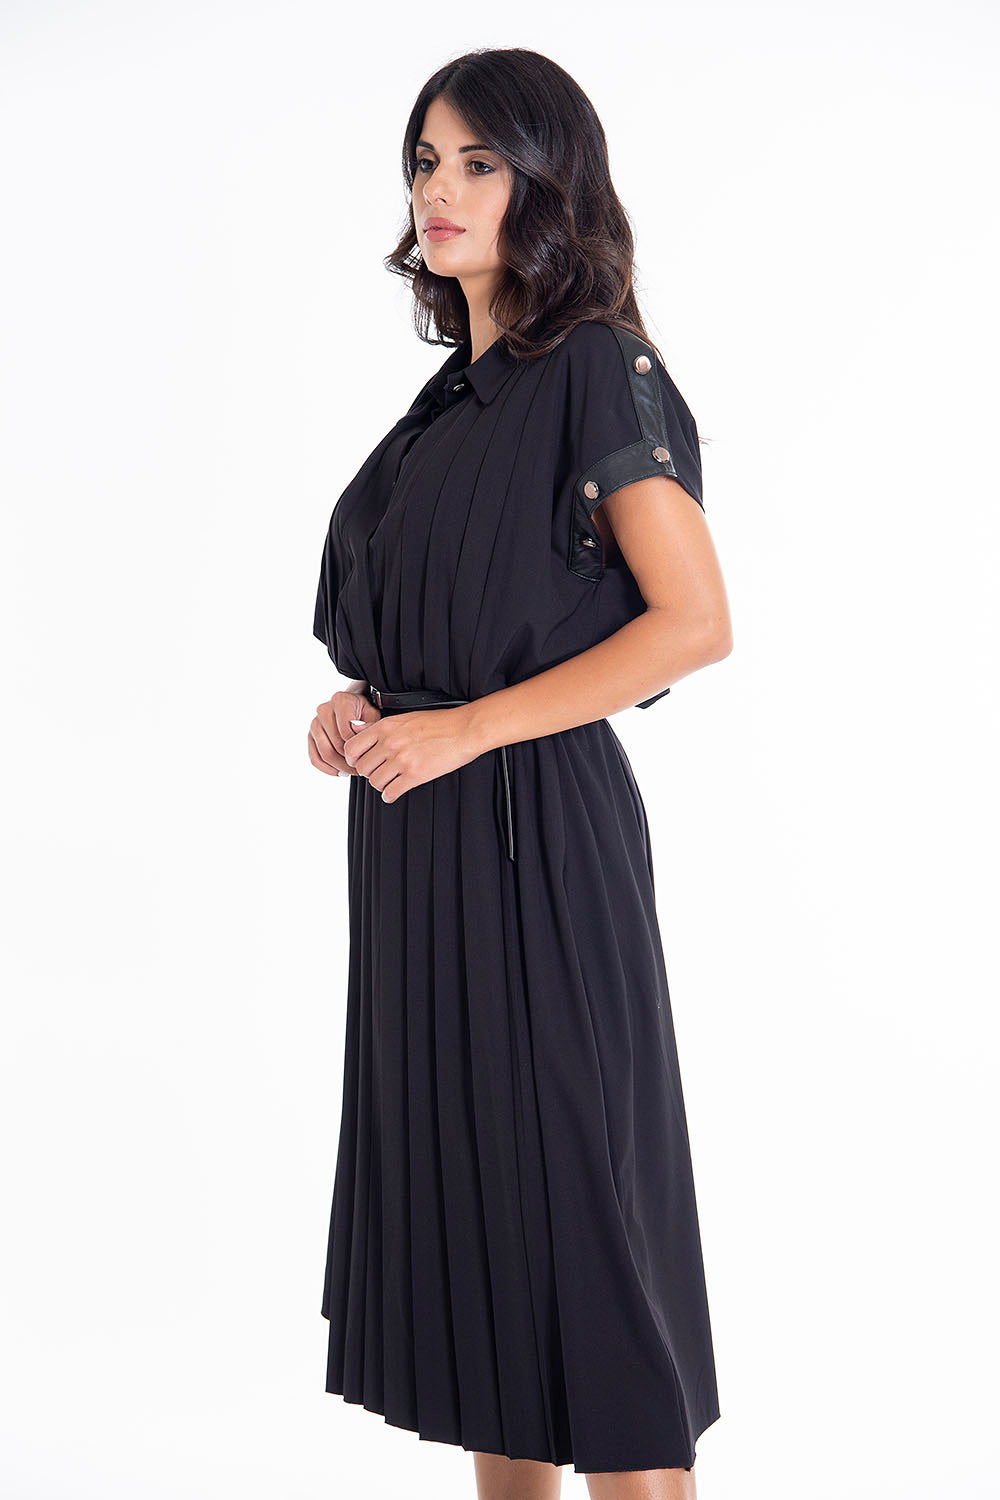 Teem oversized pleated dress with leather details